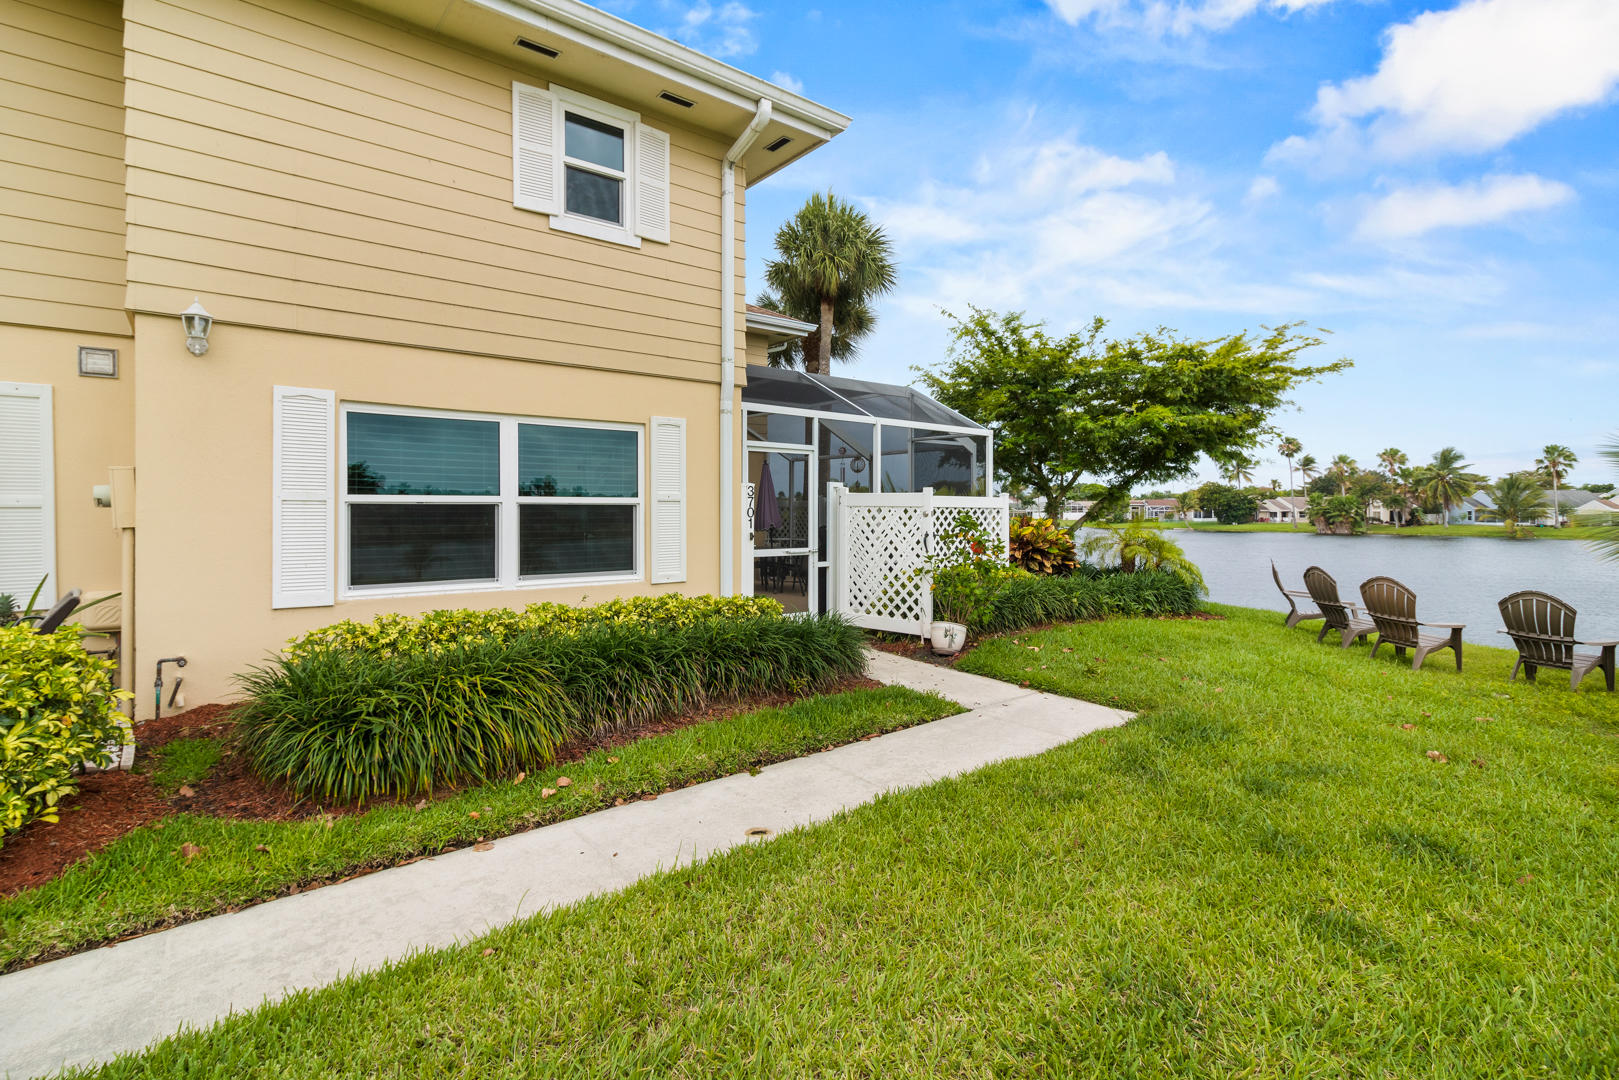 3701 Medford Court, 3701 - Boynton Beach, Florida